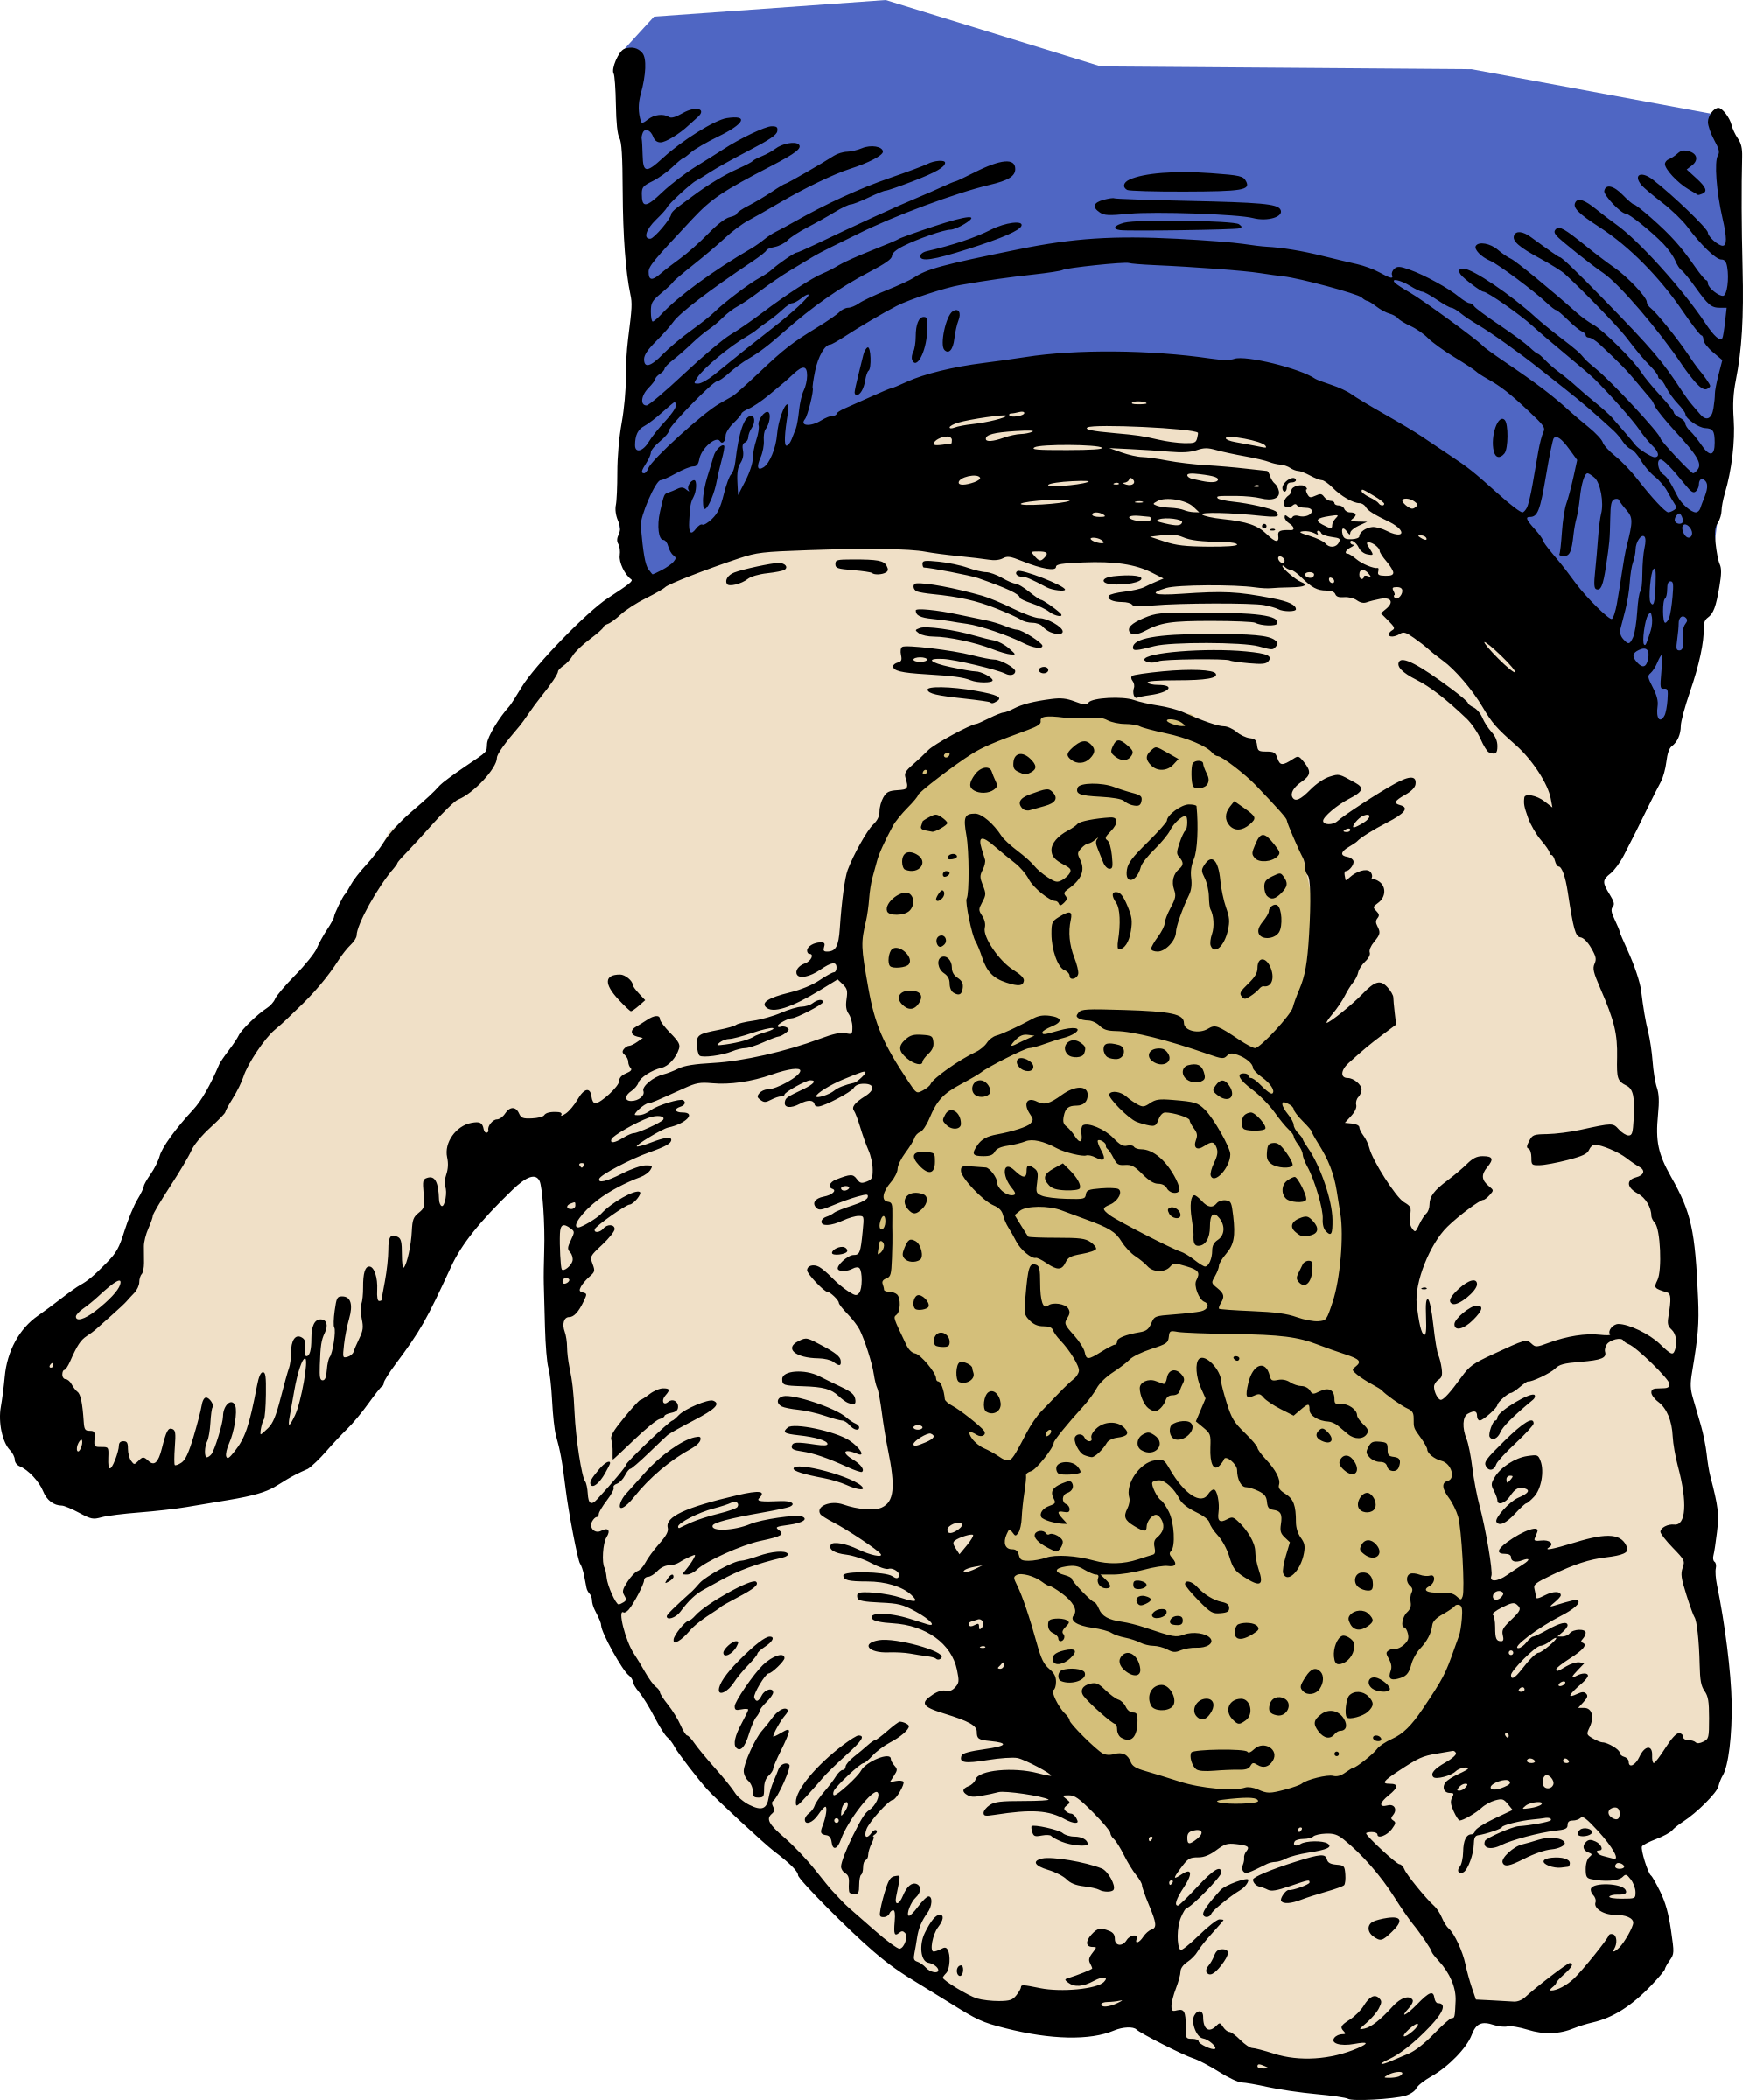 Hand With Coins by j4p4n